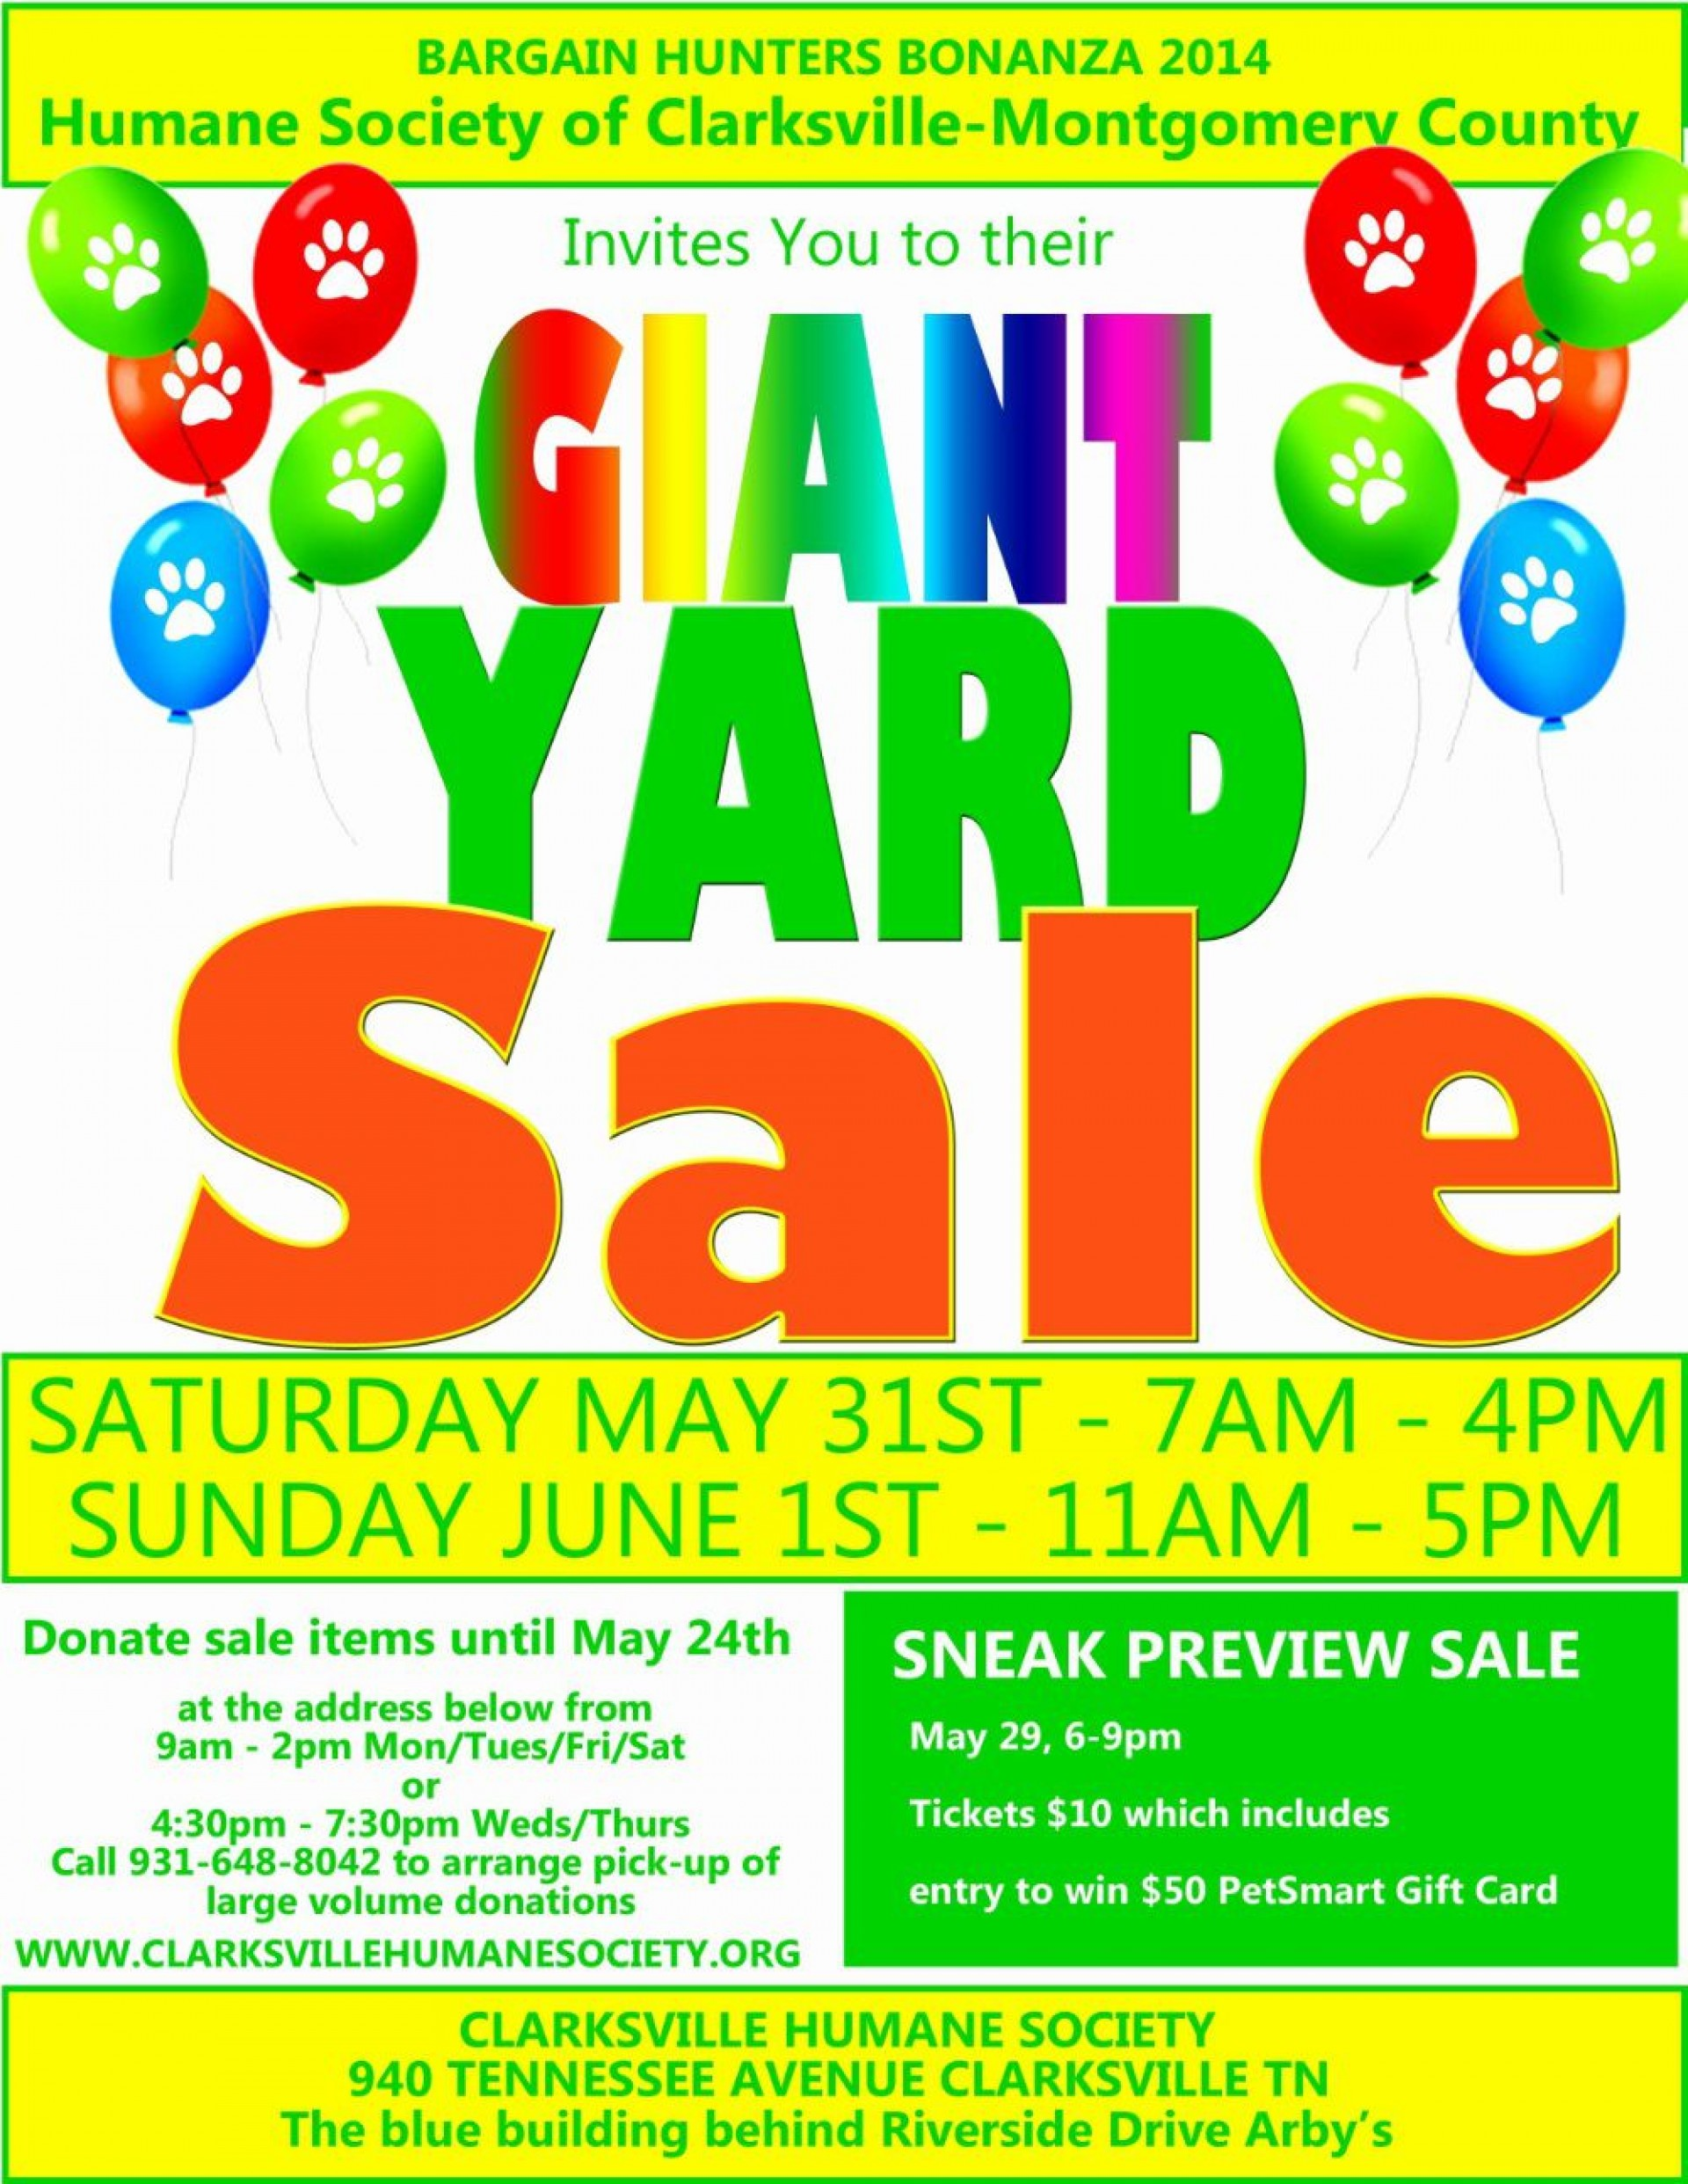 003 Sensational Yard Sale Flyer Template Example  Free Garage Microsoft Word1920